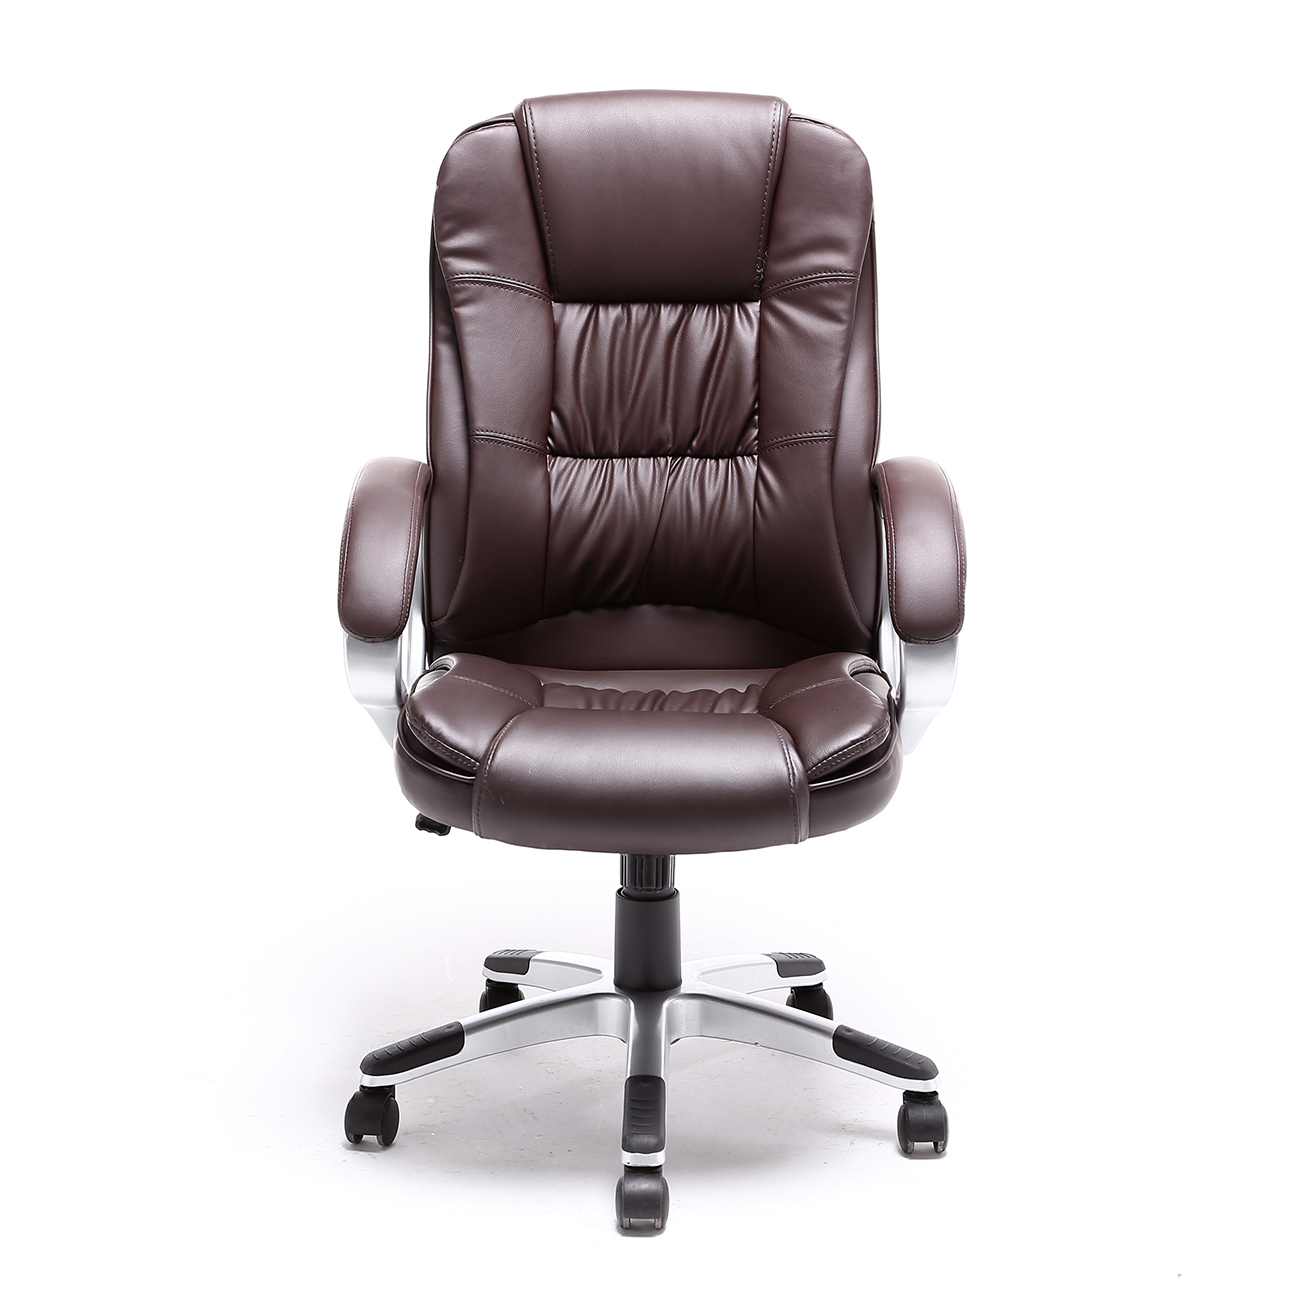 black brown white pu leather modern executive computer desk office task chair ebay. Black Bedroom Furniture Sets. Home Design Ideas